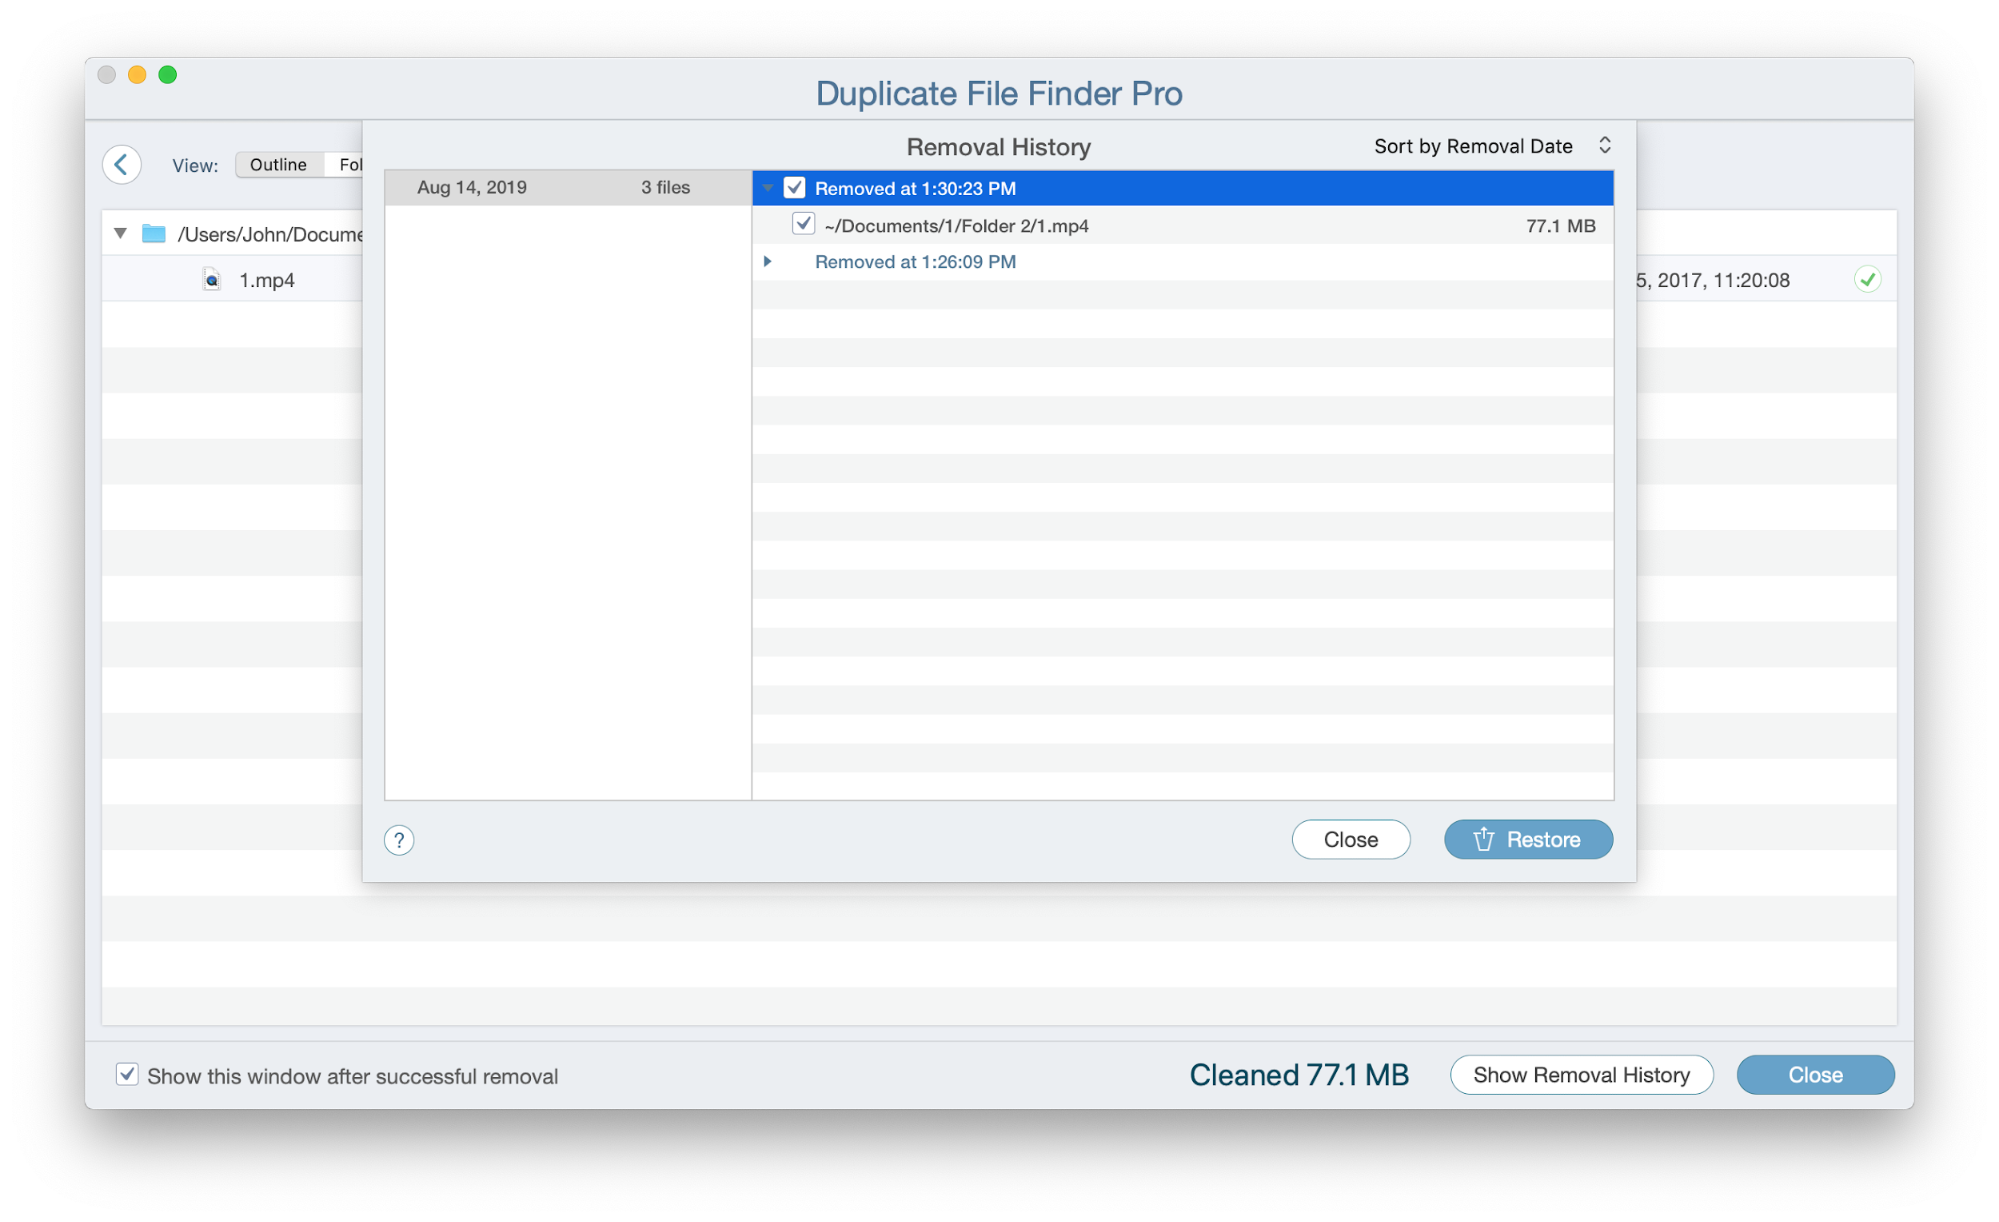 restore removed files by Duplicate File Finder